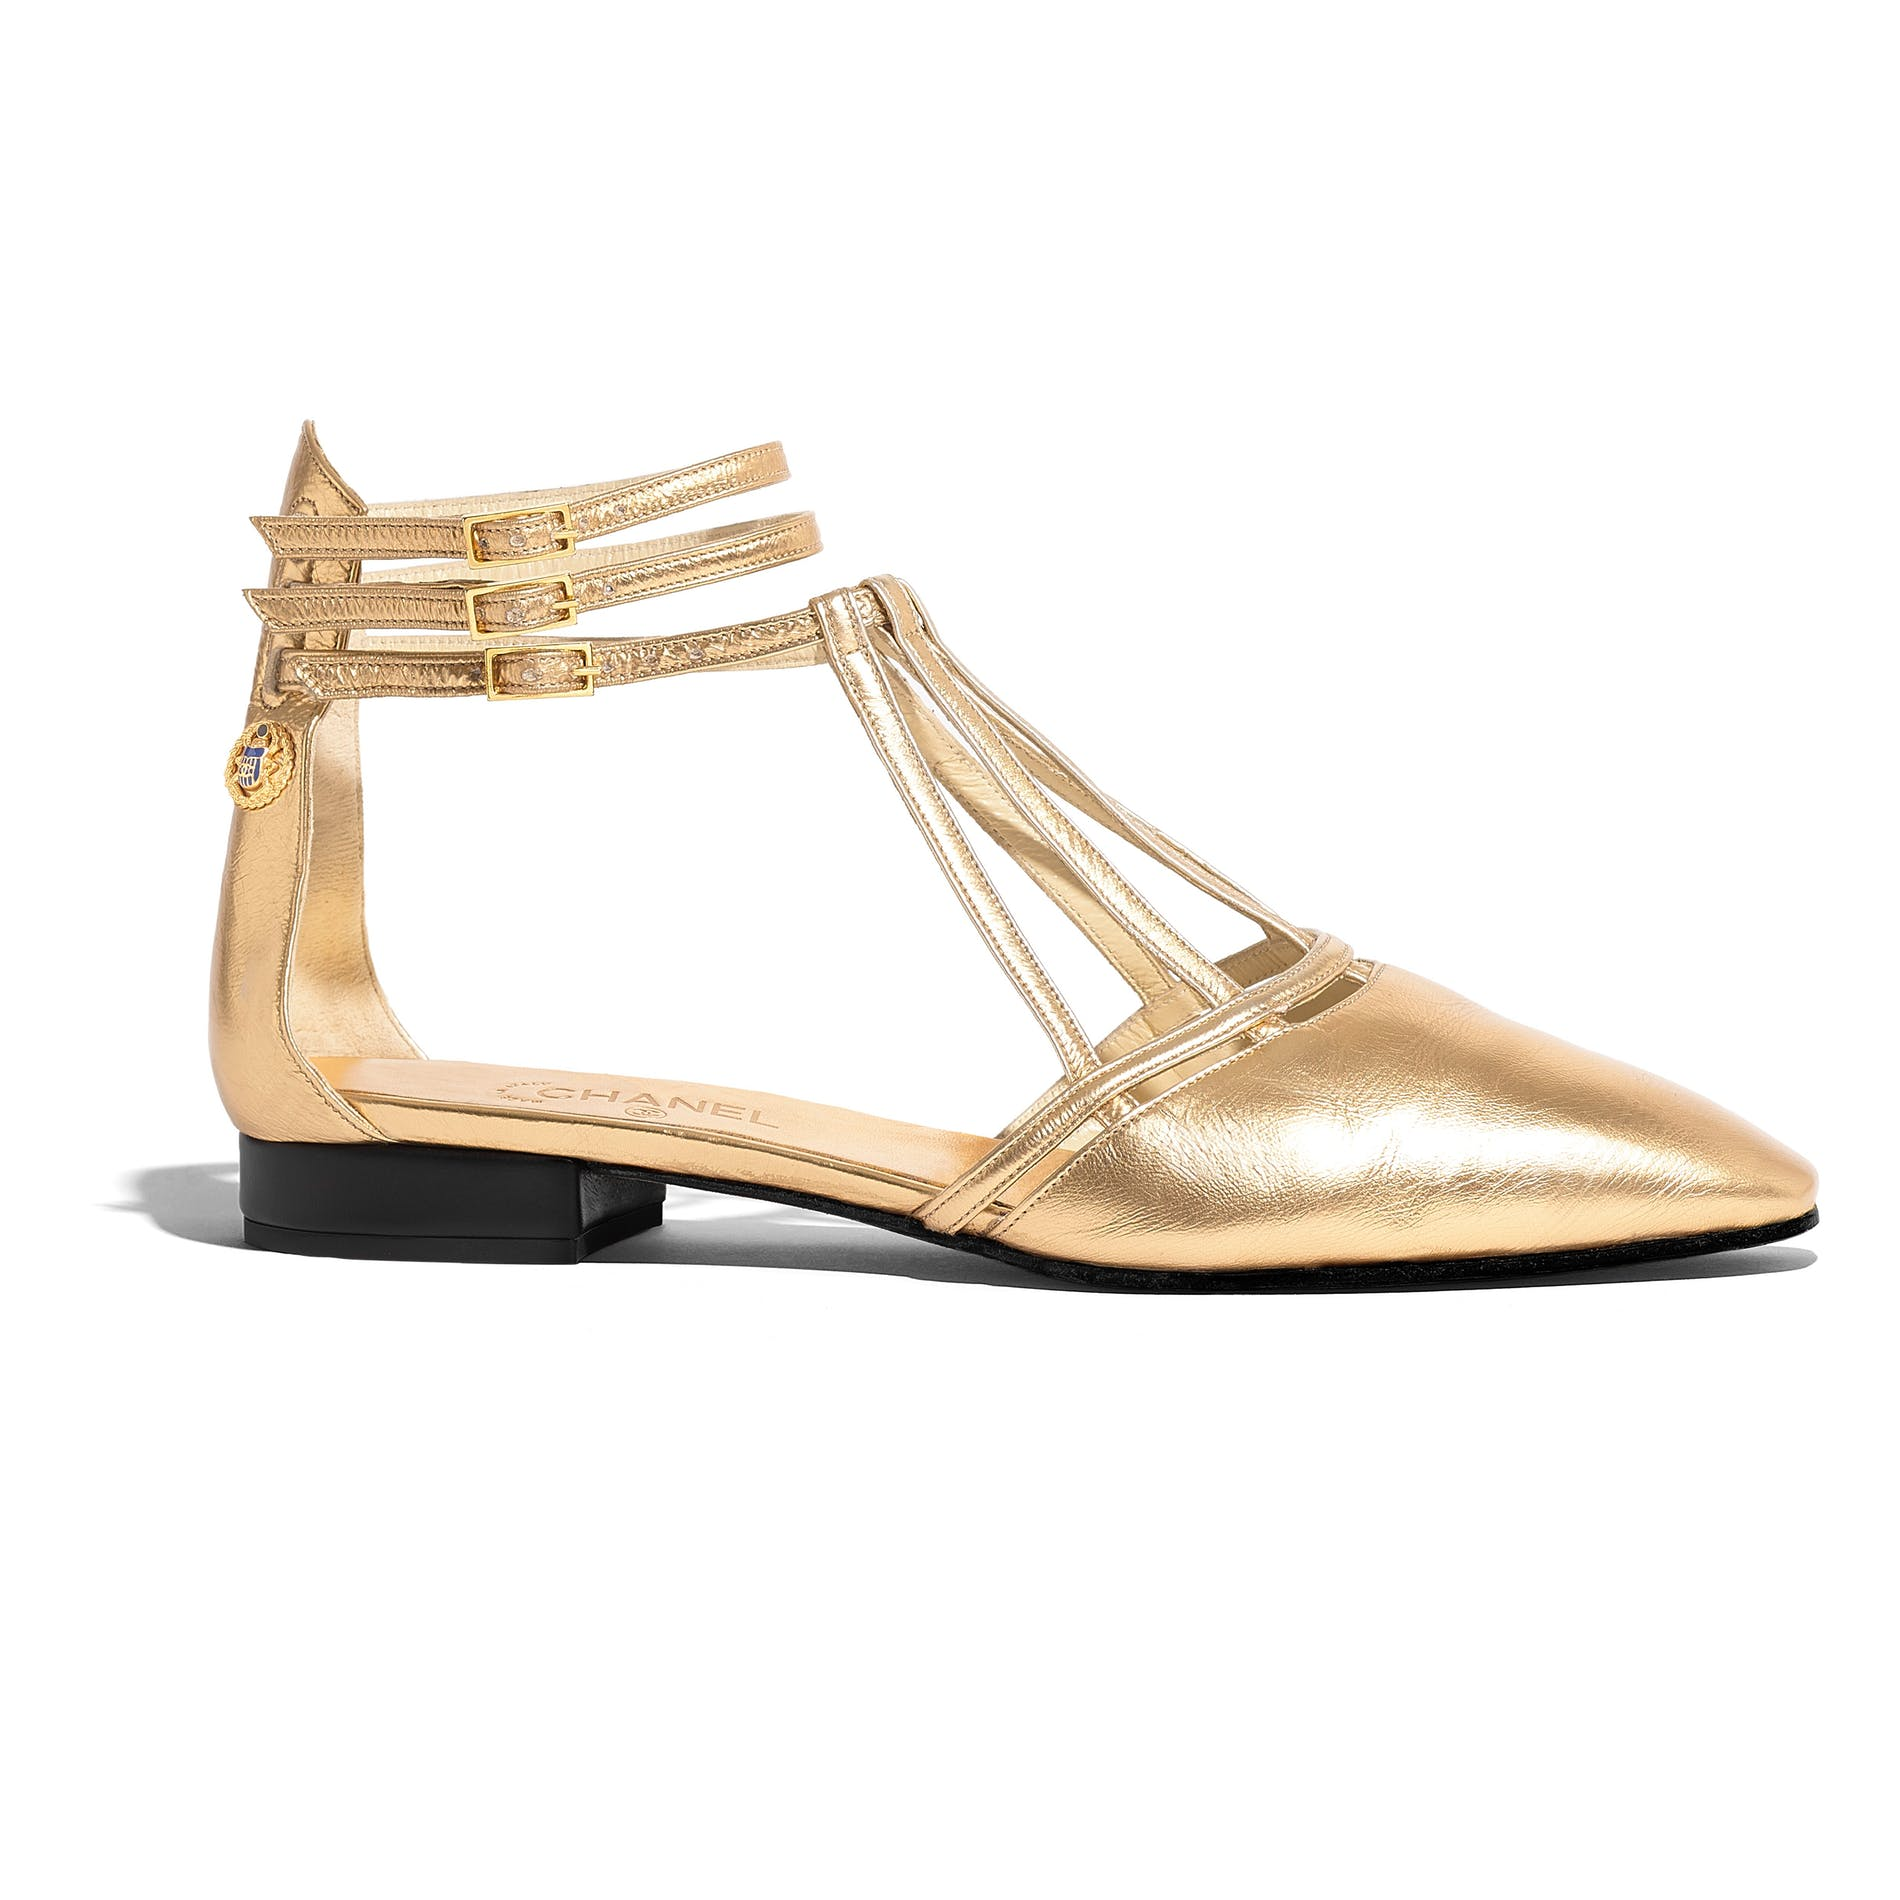 1559726673674503 06 g35047 x53042 0h853 gold sandals in lam  leather hd